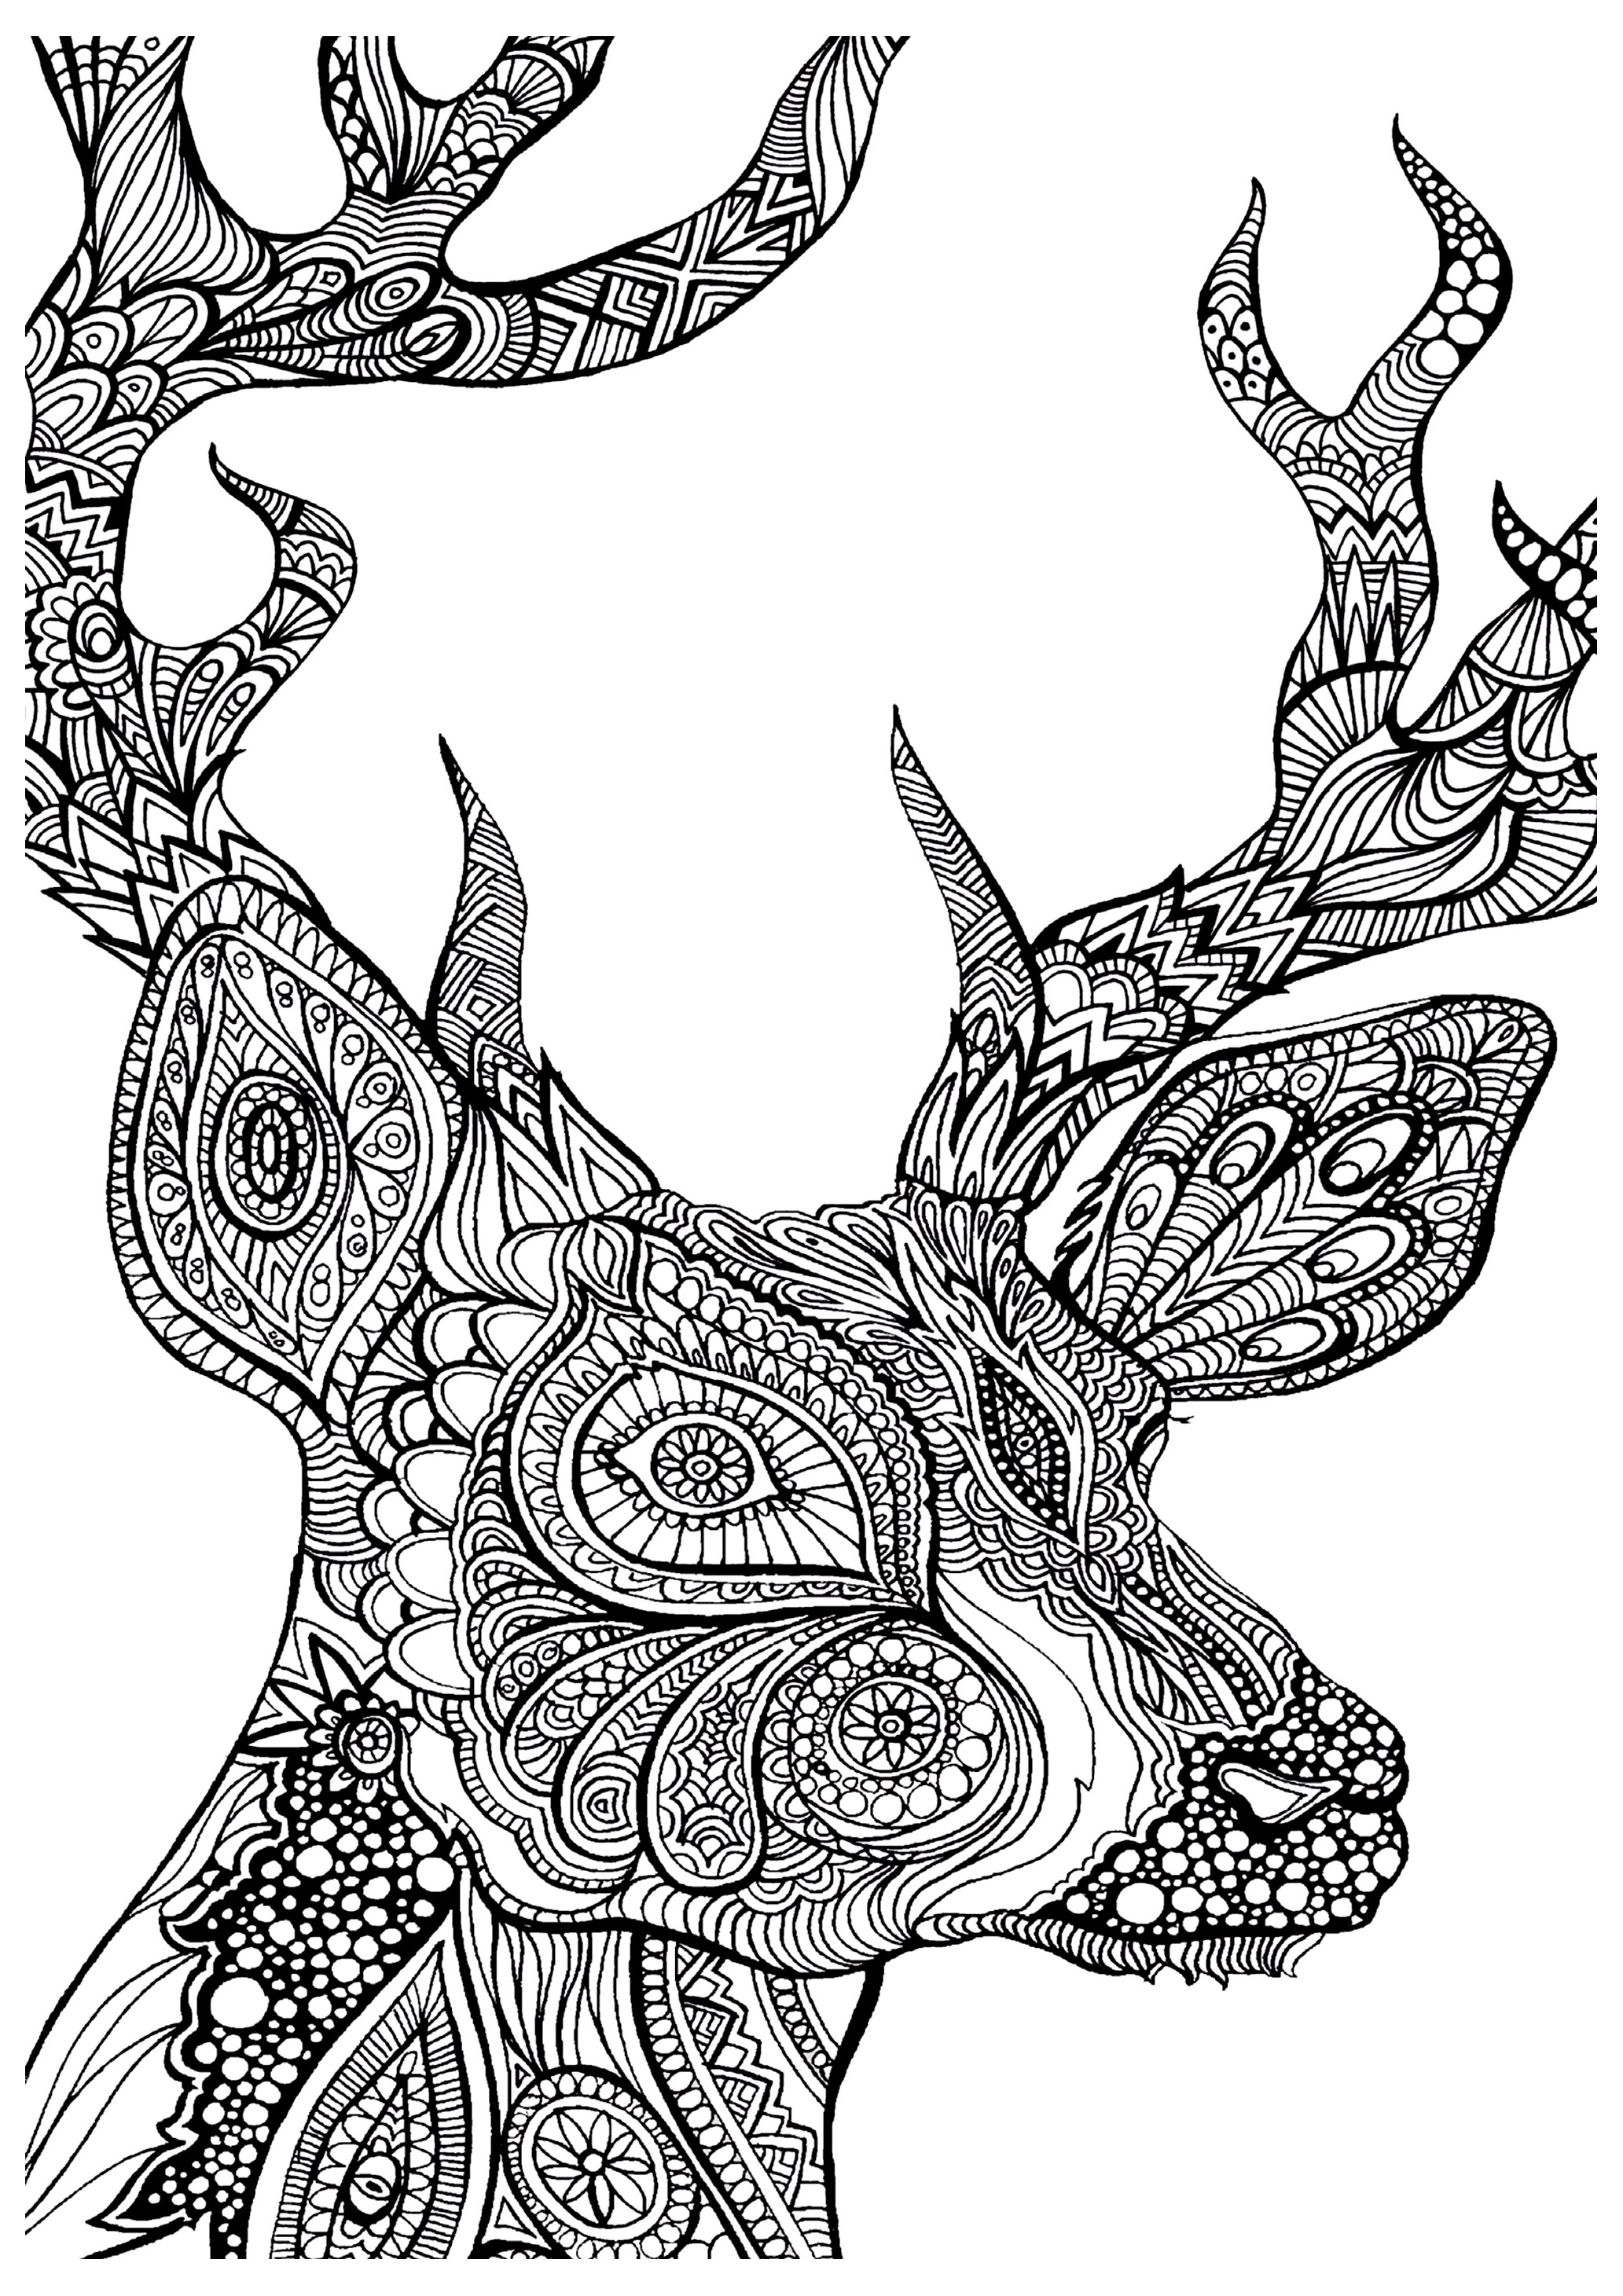 printable adults coloring pages free - photo#5